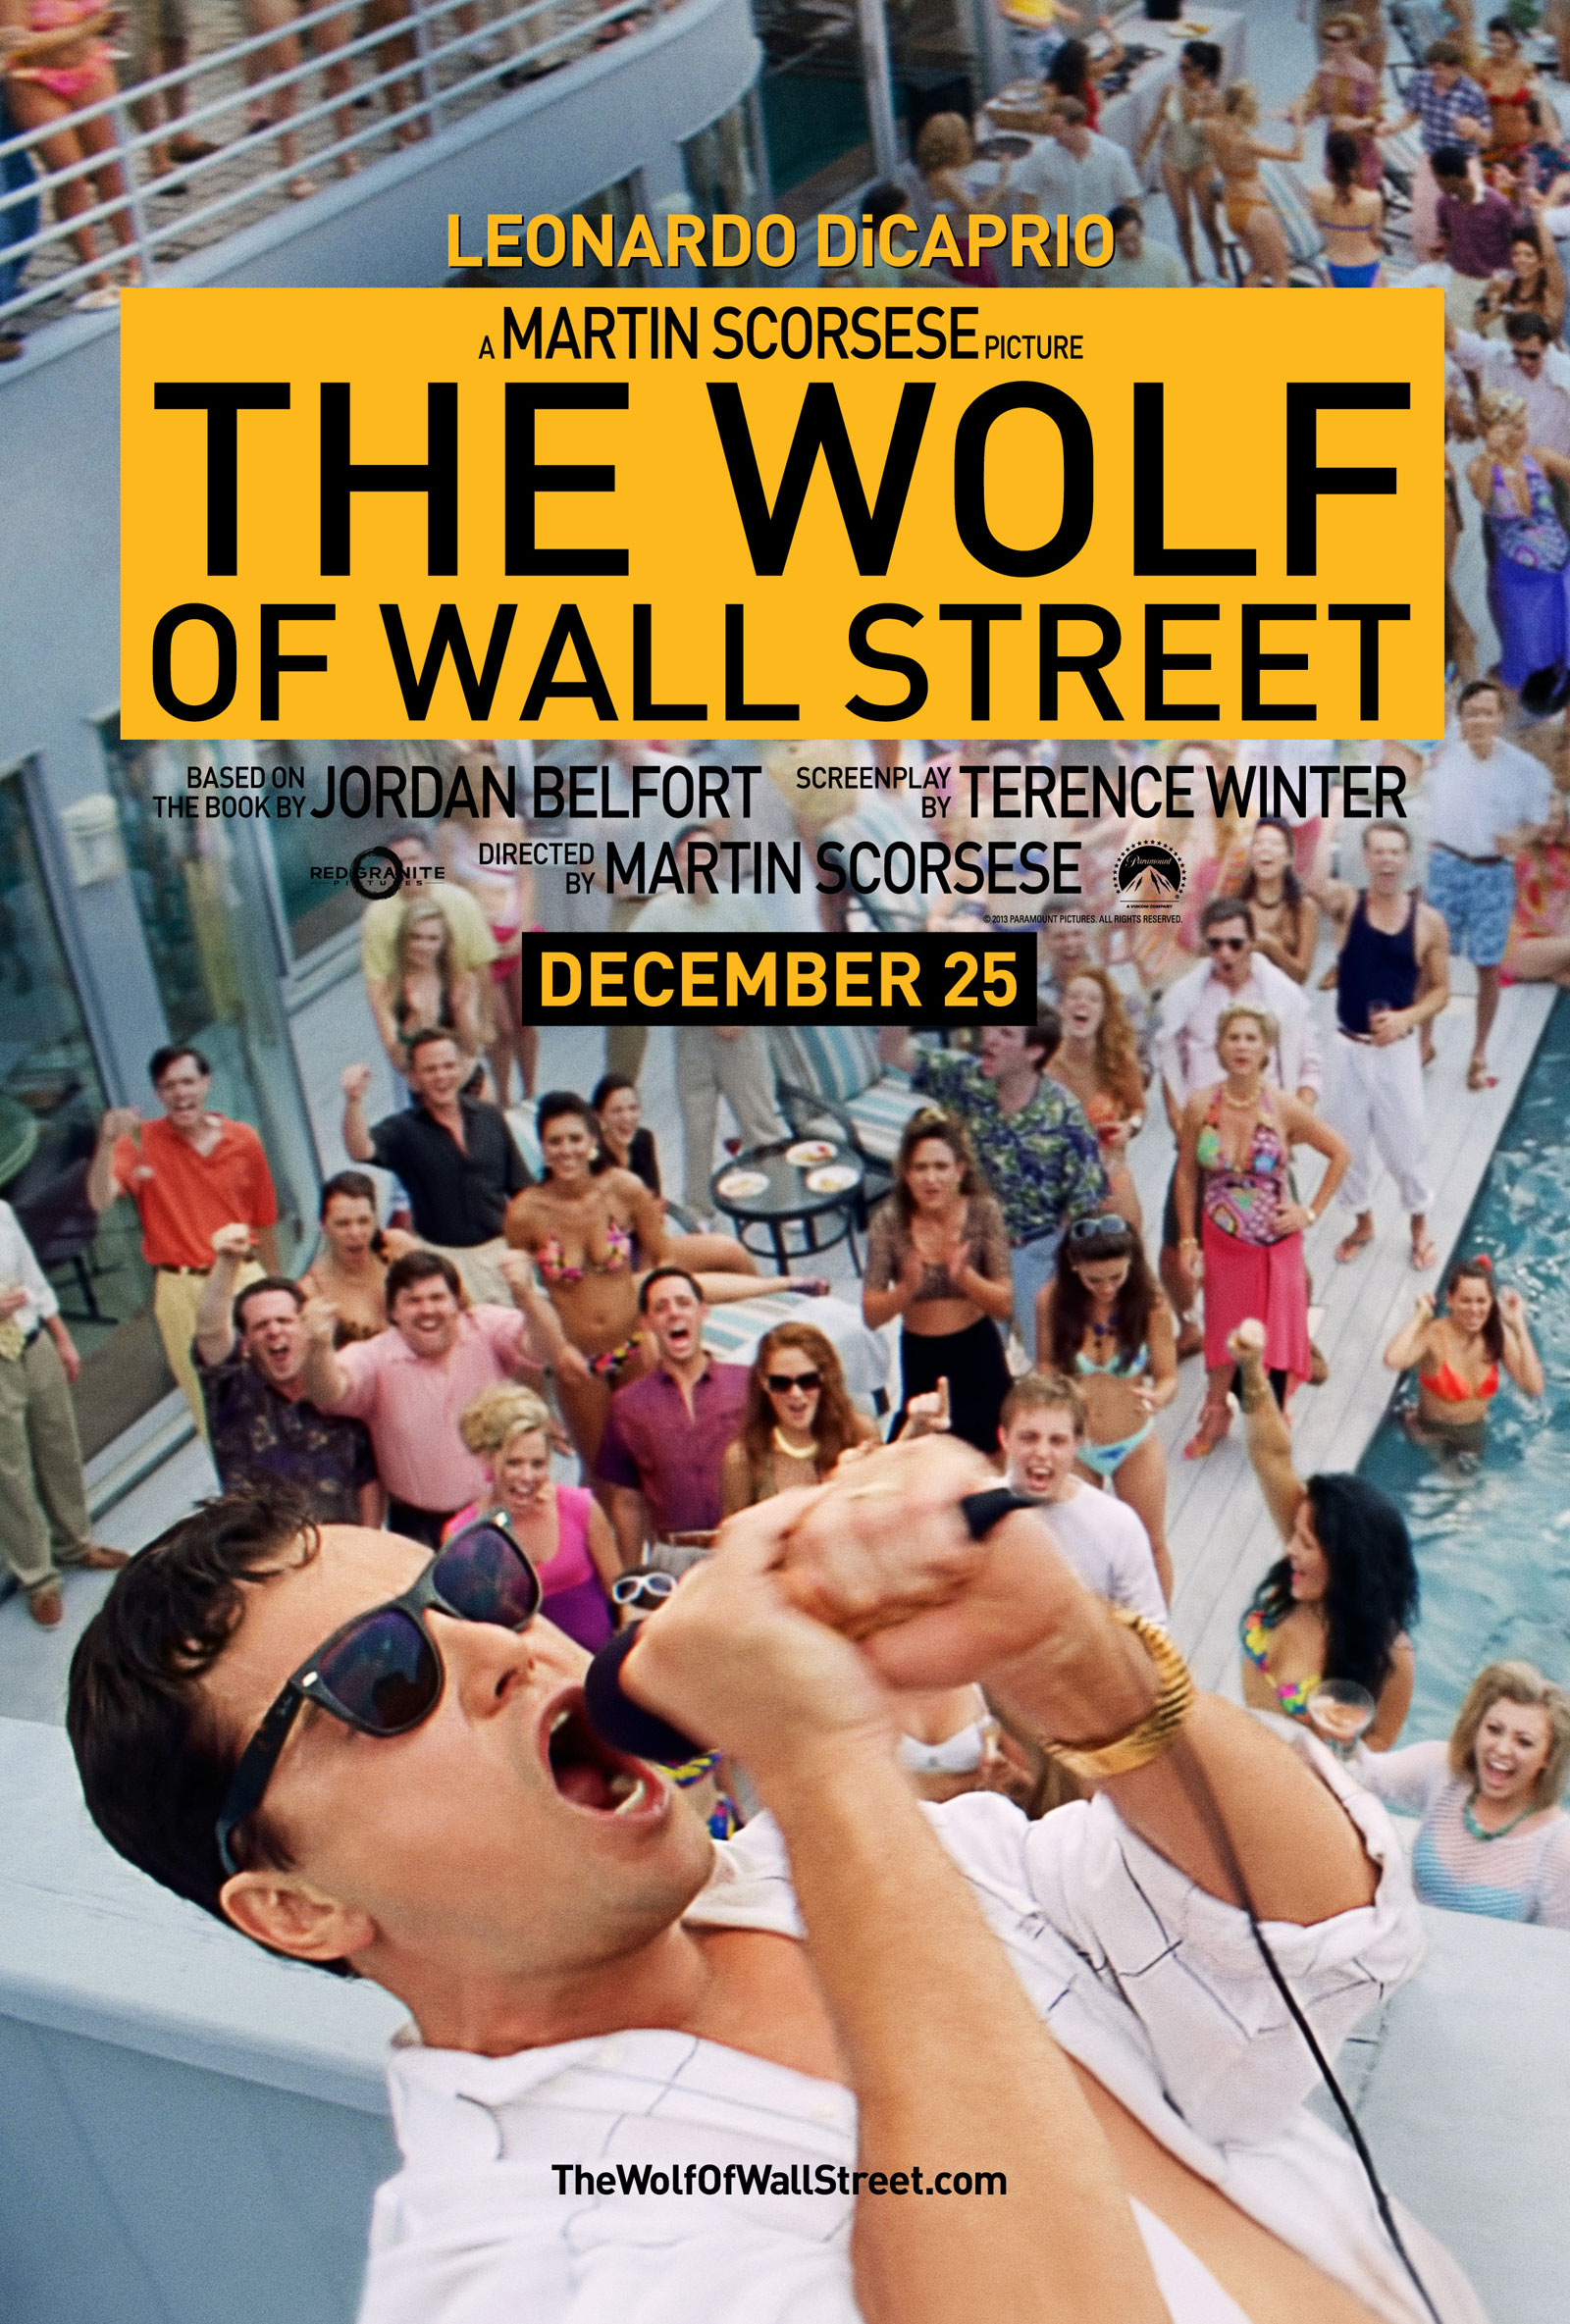 All Wolf wall street movie curious